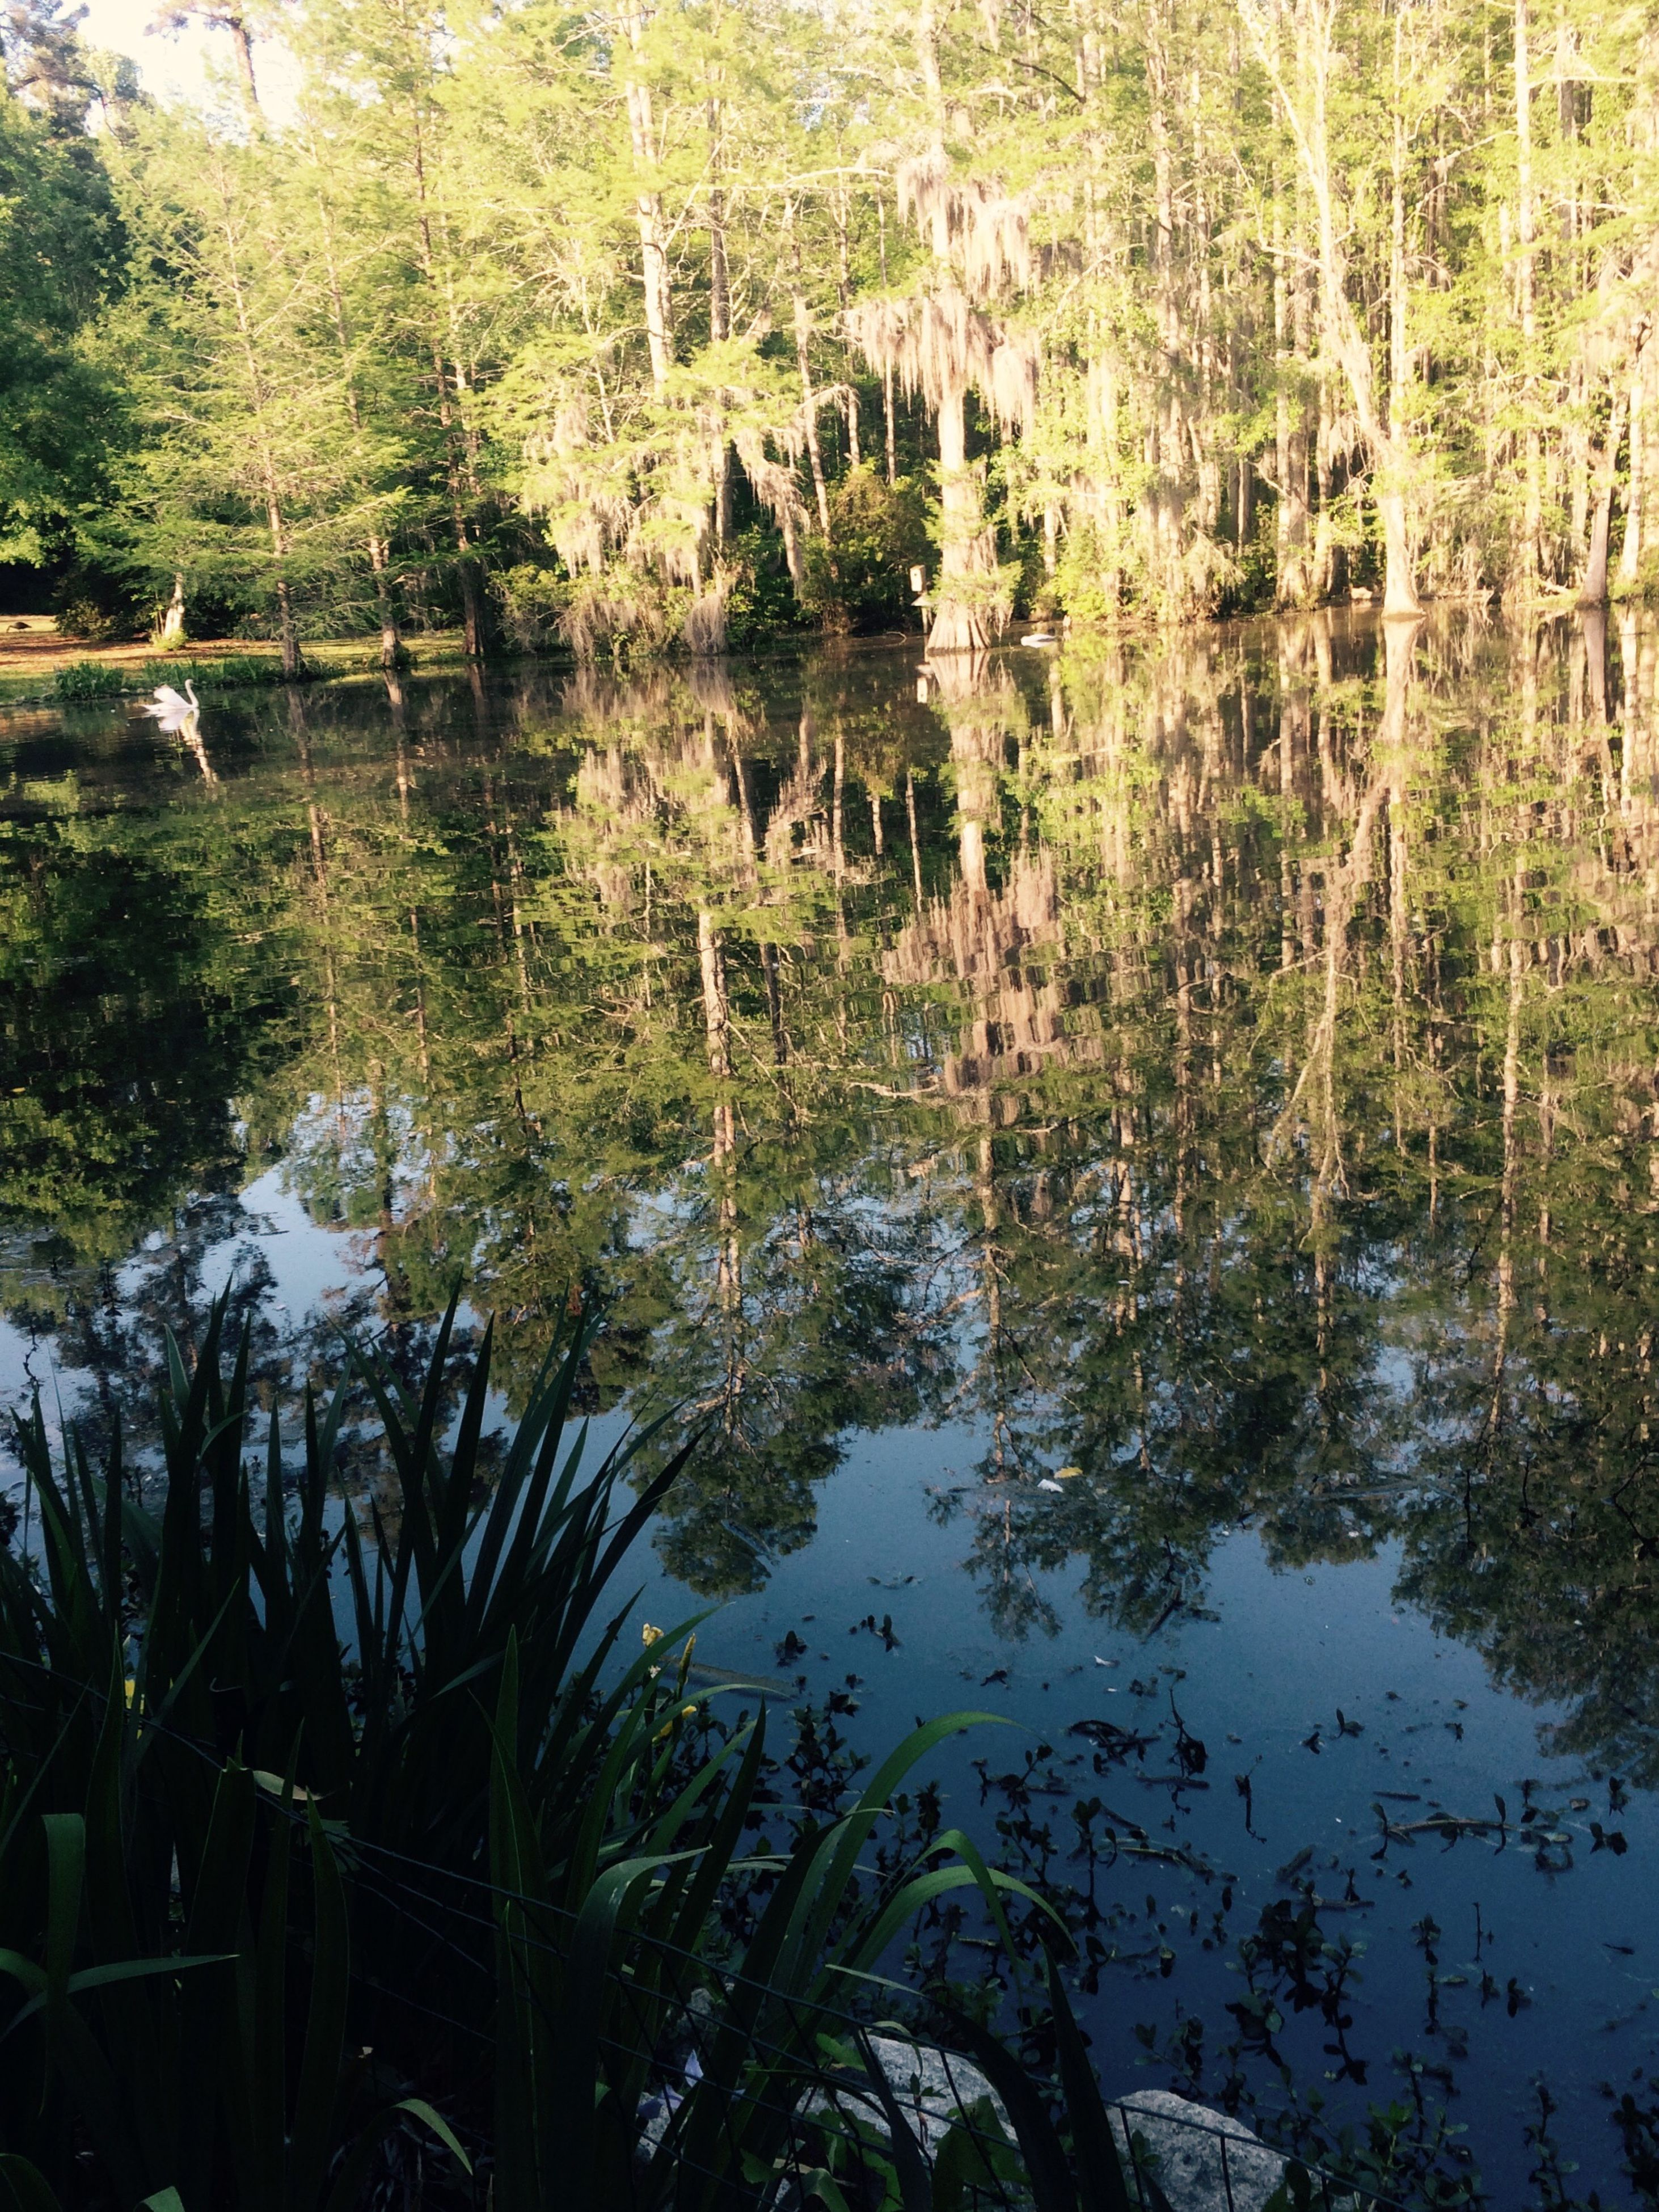 water, nature, reflection, tree, forest, lake, plant, growth, day, outdoors, no people, beauty in nature, grass